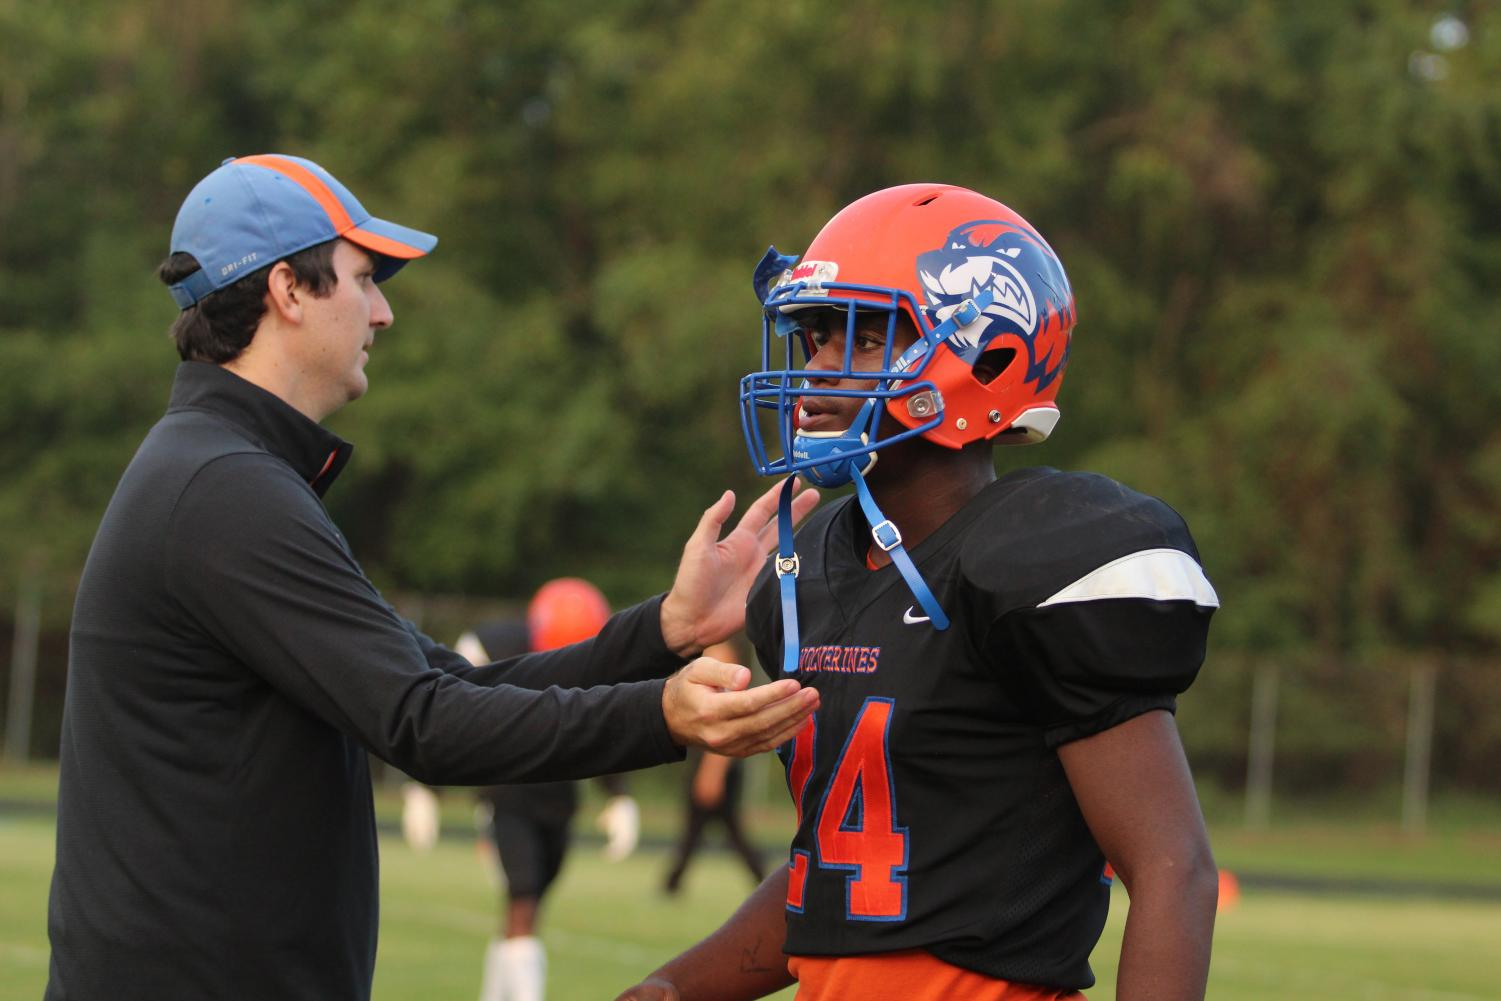 Coach Maxwell Bero talks to sophomore Baebaa Sayeh during a game.  Coaches and athletes alike confirmed that hazing is not tolerated at Watkins Mill.